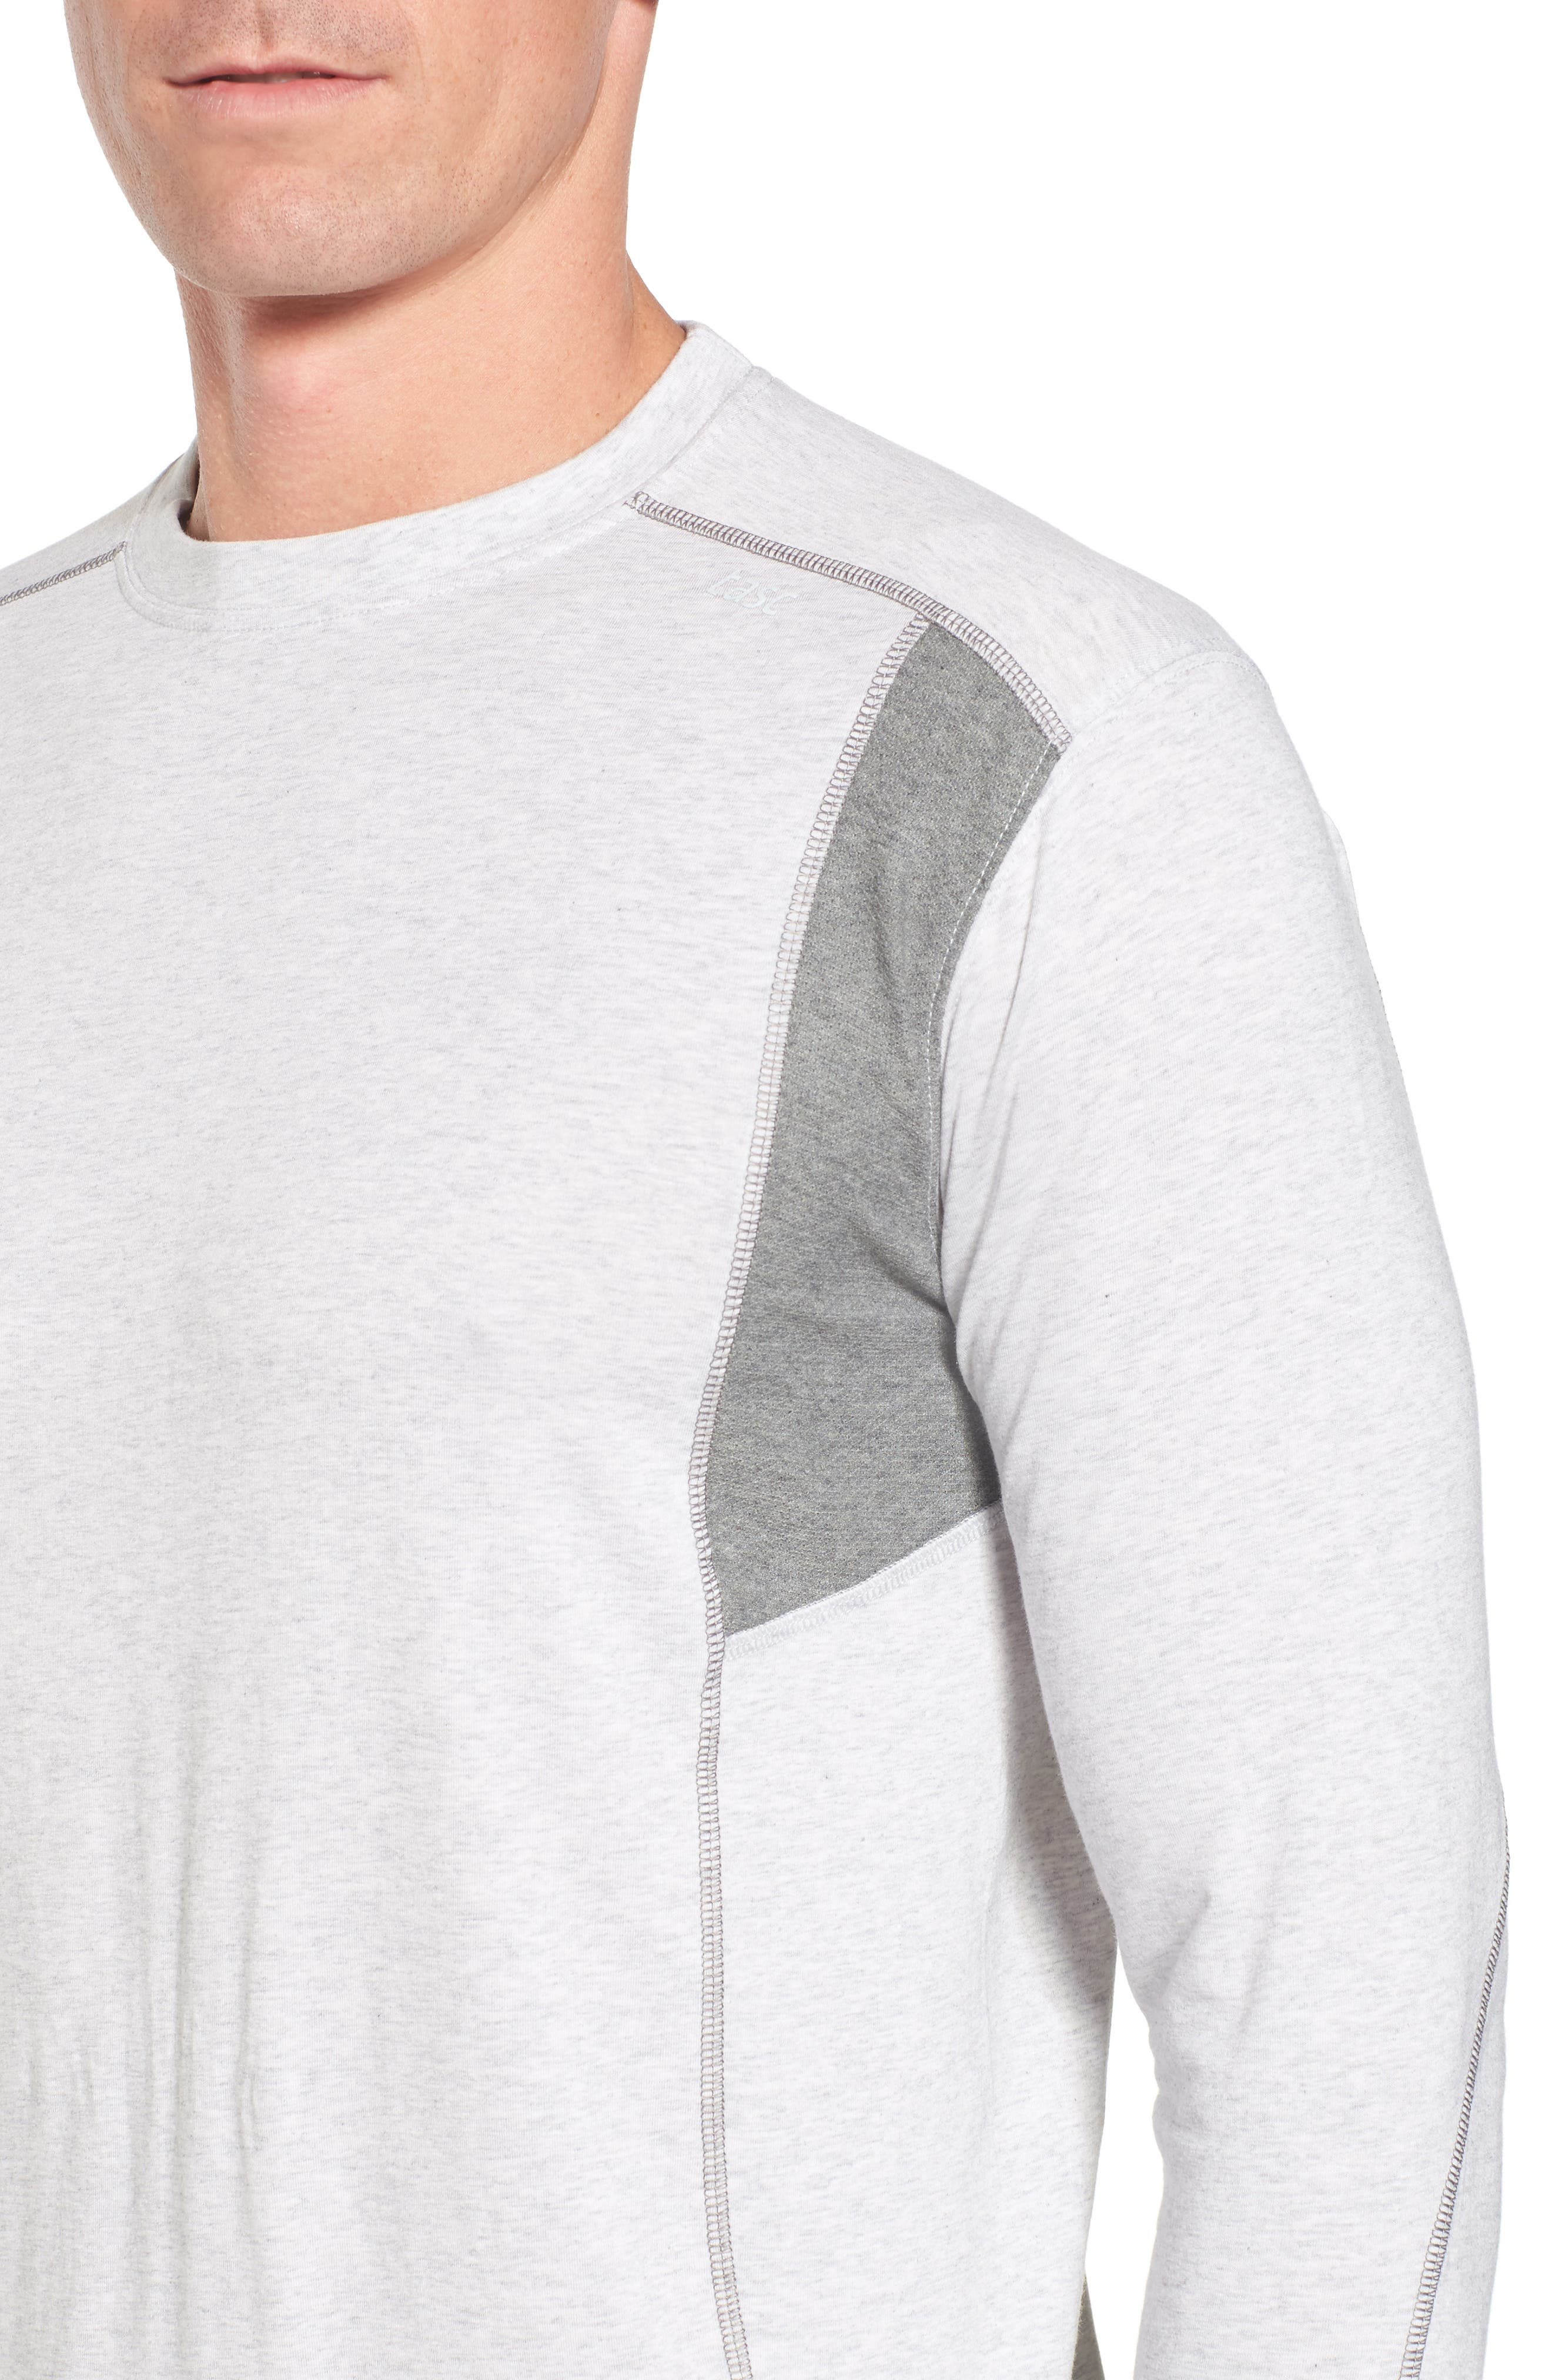 Charge Sweatshirt,                             Alternate thumbnail 4, color,                             Light Heather Gray